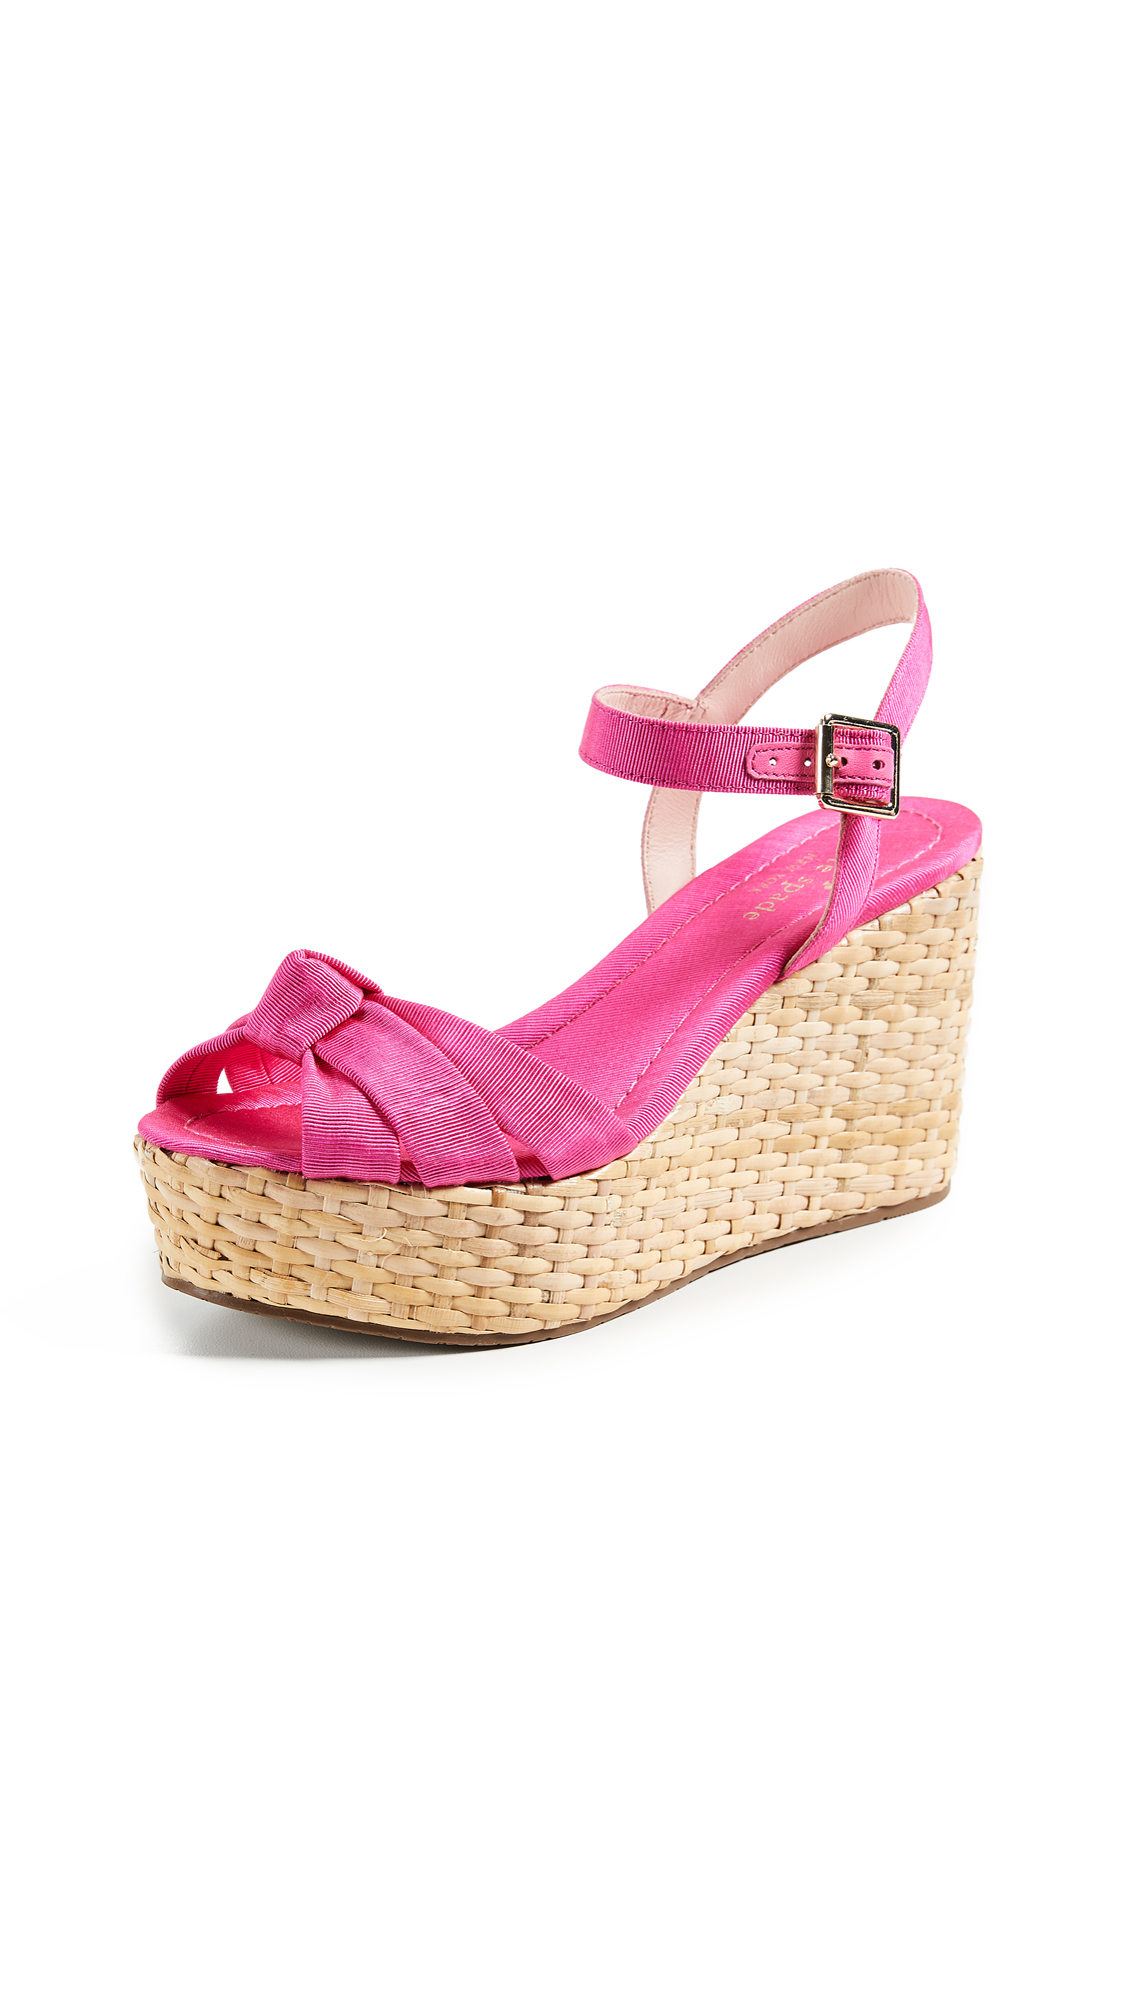 Kate Spade New York Tilly Strappy Wedges - Pink